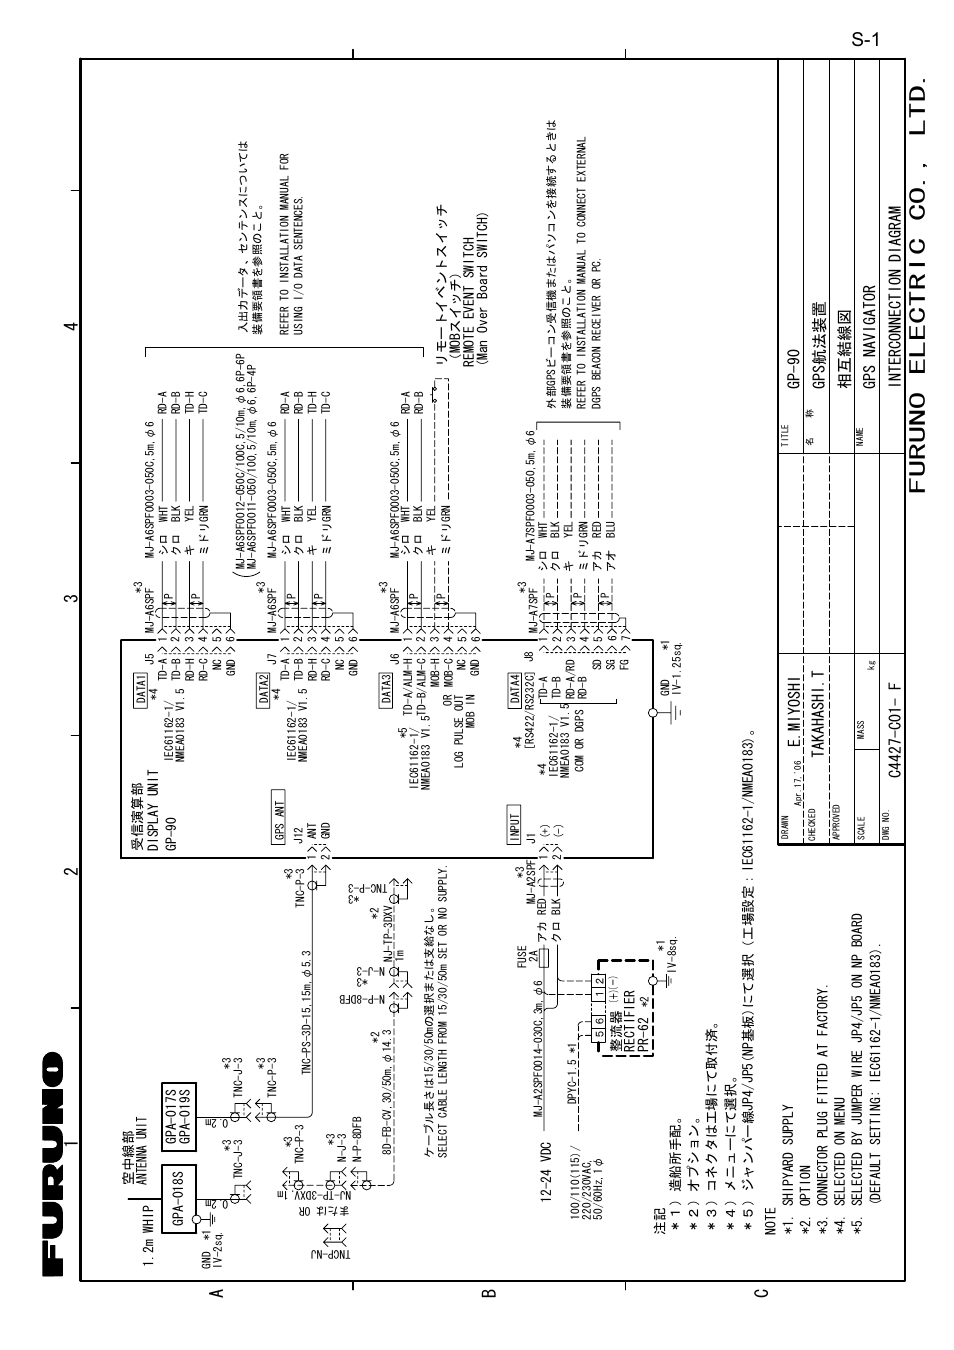 interconnection diagram  furuno electric co   ltd  1a 34 b